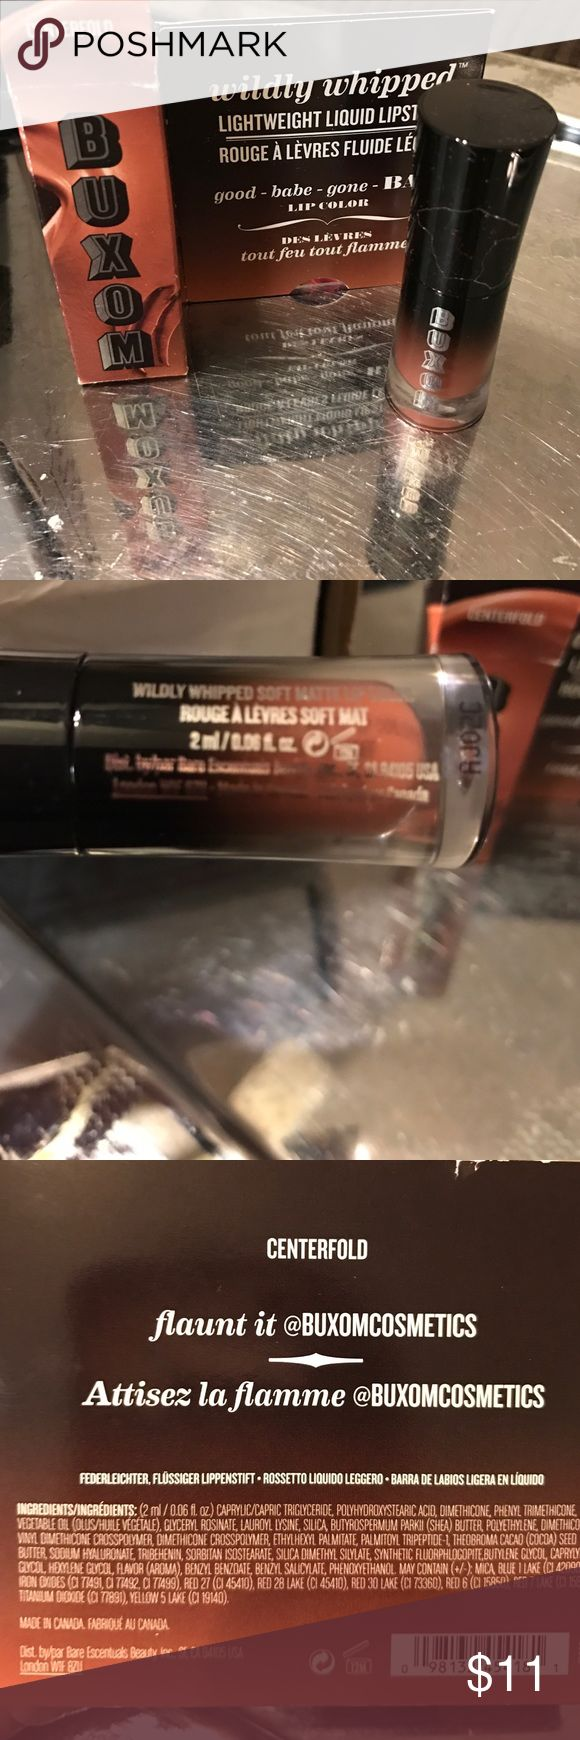 """Buxom deluxe sample .08 oz """"centerfold"""" lipstick. BNWT, like all my beauty products. Instead of buying the full size, try it out first before investing in the full size. Great opportunity to discover how you like the color and brand at a great price. Makes a great item to add in a gift basket for make up lovers and perfect to keep in purse or toiletry bag for trips. Lightweight liquid lipstick. Add to a bundle (to make your gift basket) and get an even better price. BNWT in original box…"""